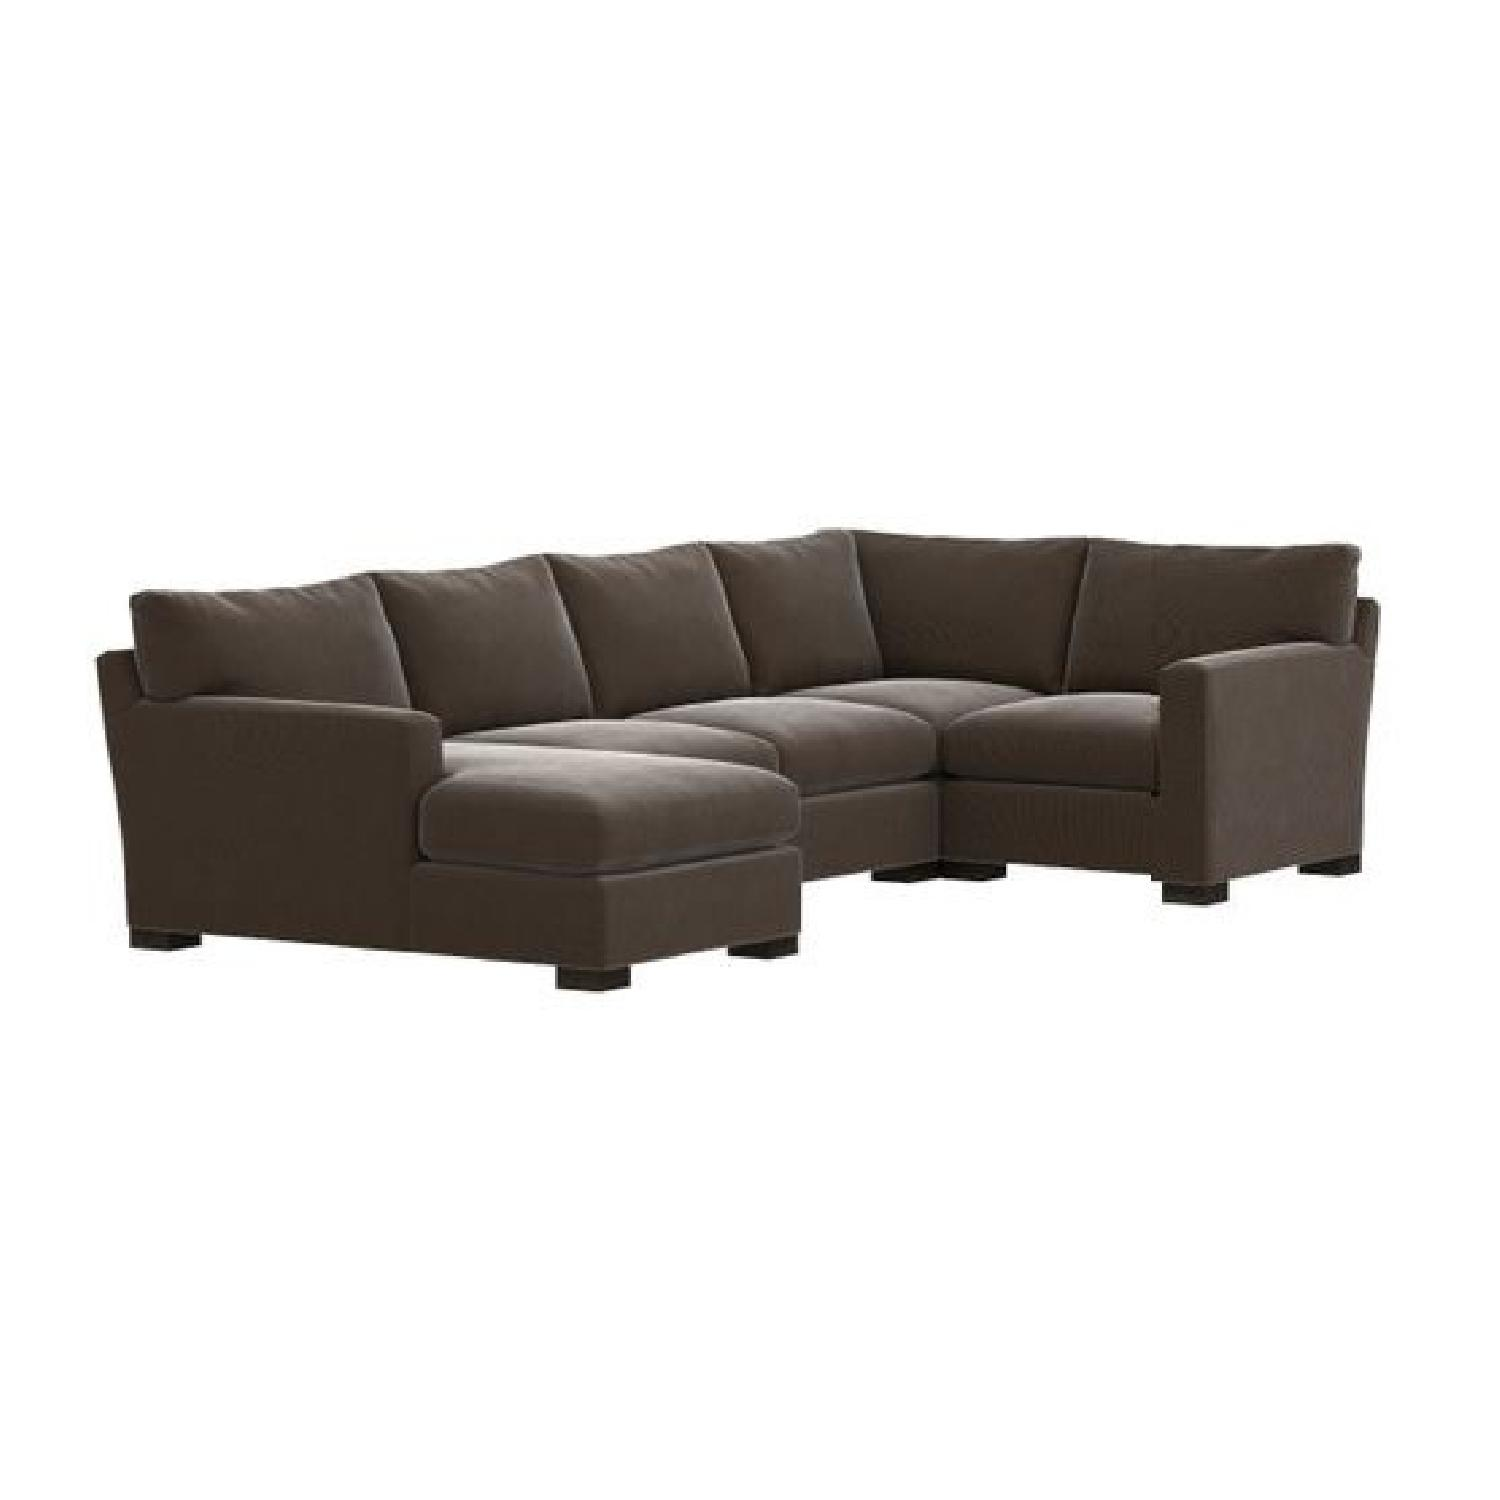 Crate & Barrel Axis 4-Piece Sectional Sofa